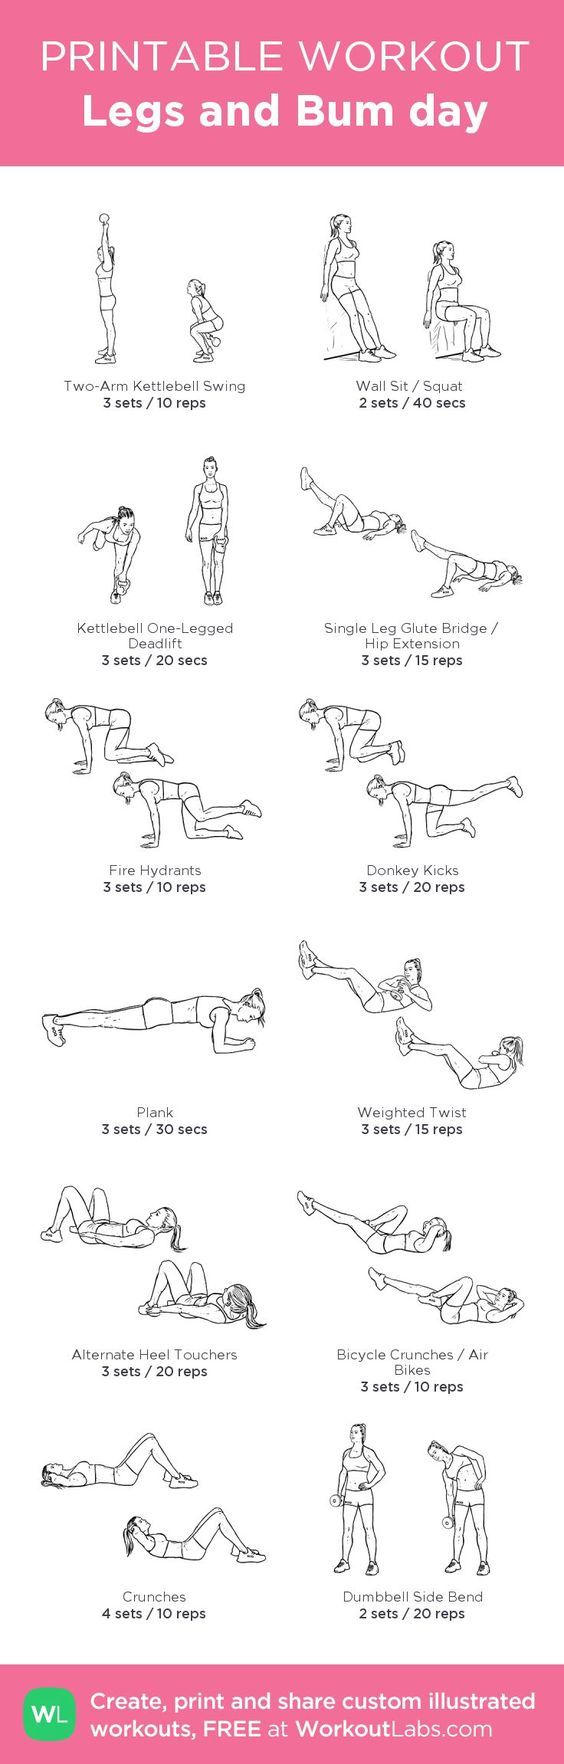 Legs and Bum day : my custom printable workout by @WorkoutLabs #workoutlabs #customworkout